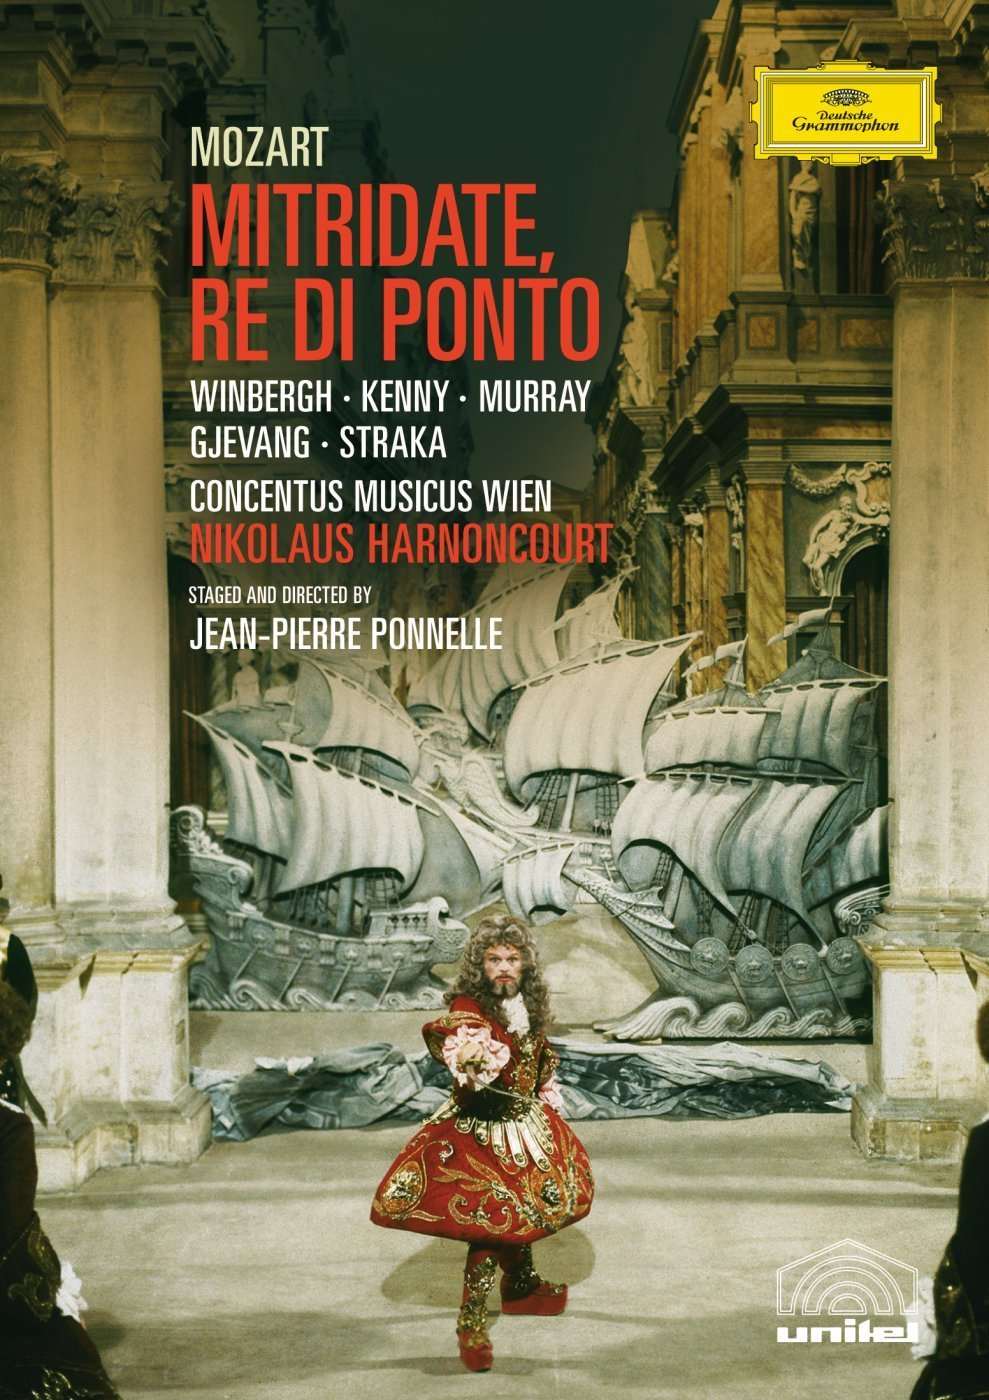 Amazon.com: Mozart - Mitridate, Re di Ponto: Gösta Winbergh, Yvonne Kenny, Ann Murray, Anna Gjevang, Joan Rodgers, Peter Straka, Jean-Pierre Ponnelle, ...